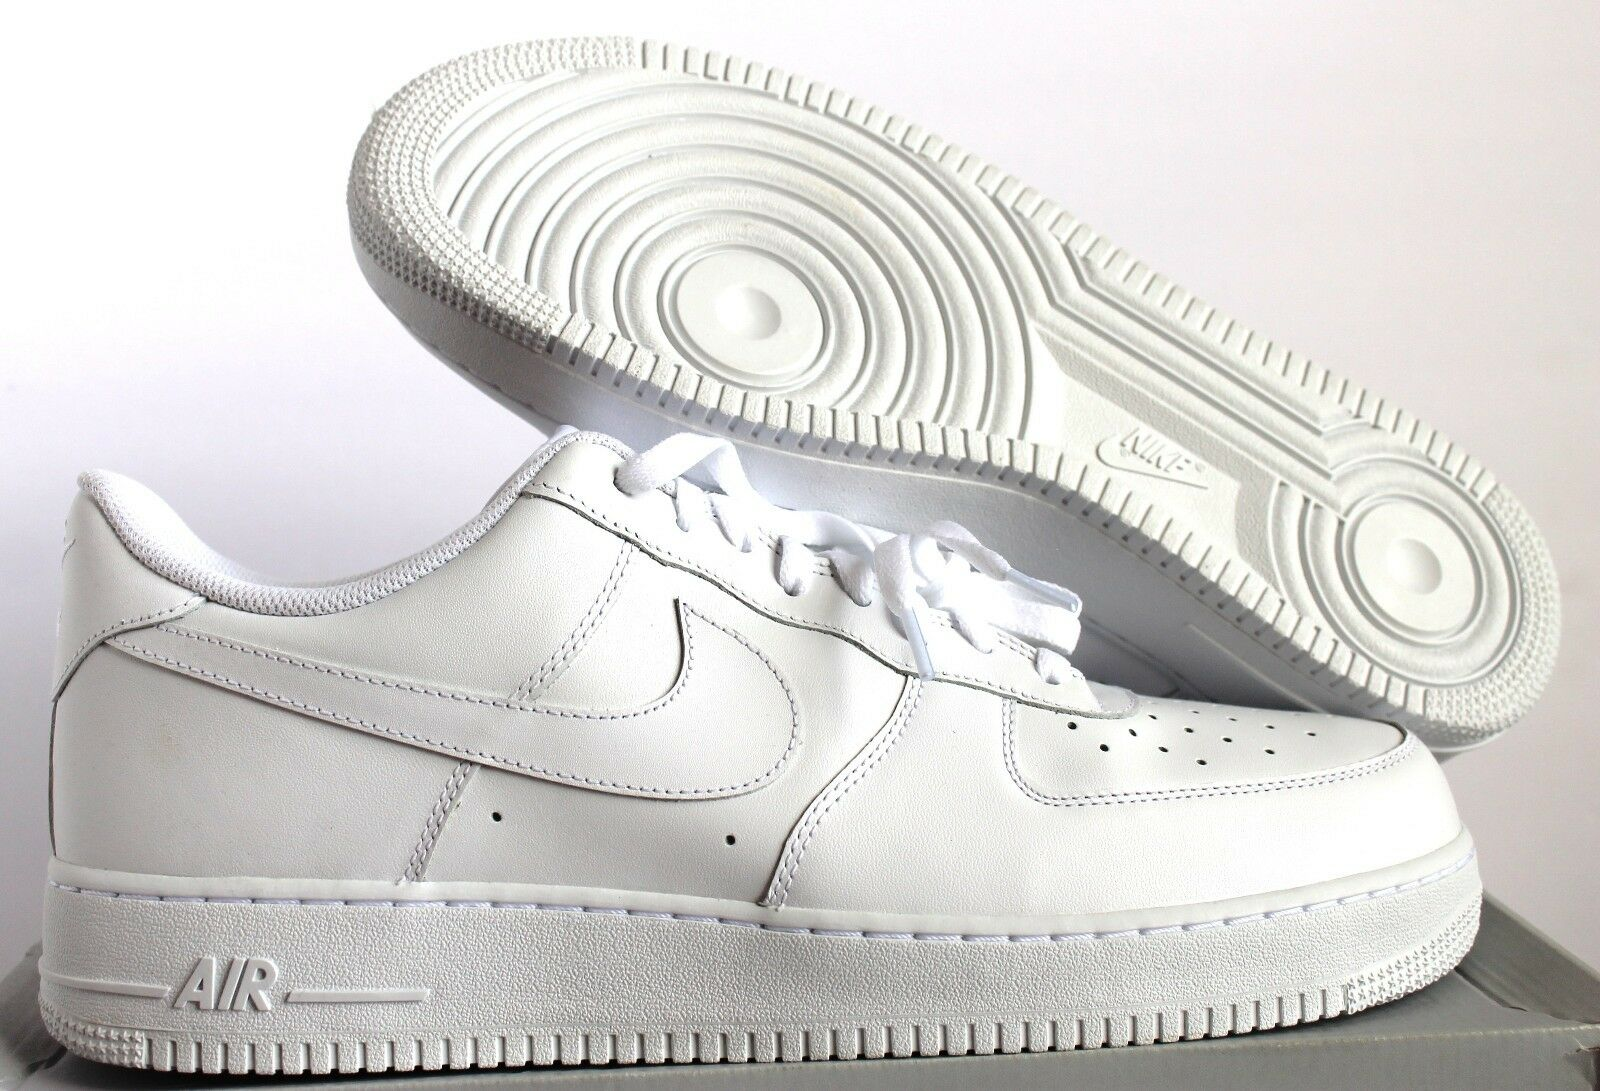 Nike air force 1 07 uomini white-white uomini 07 sz 12 [315122-111] e60707